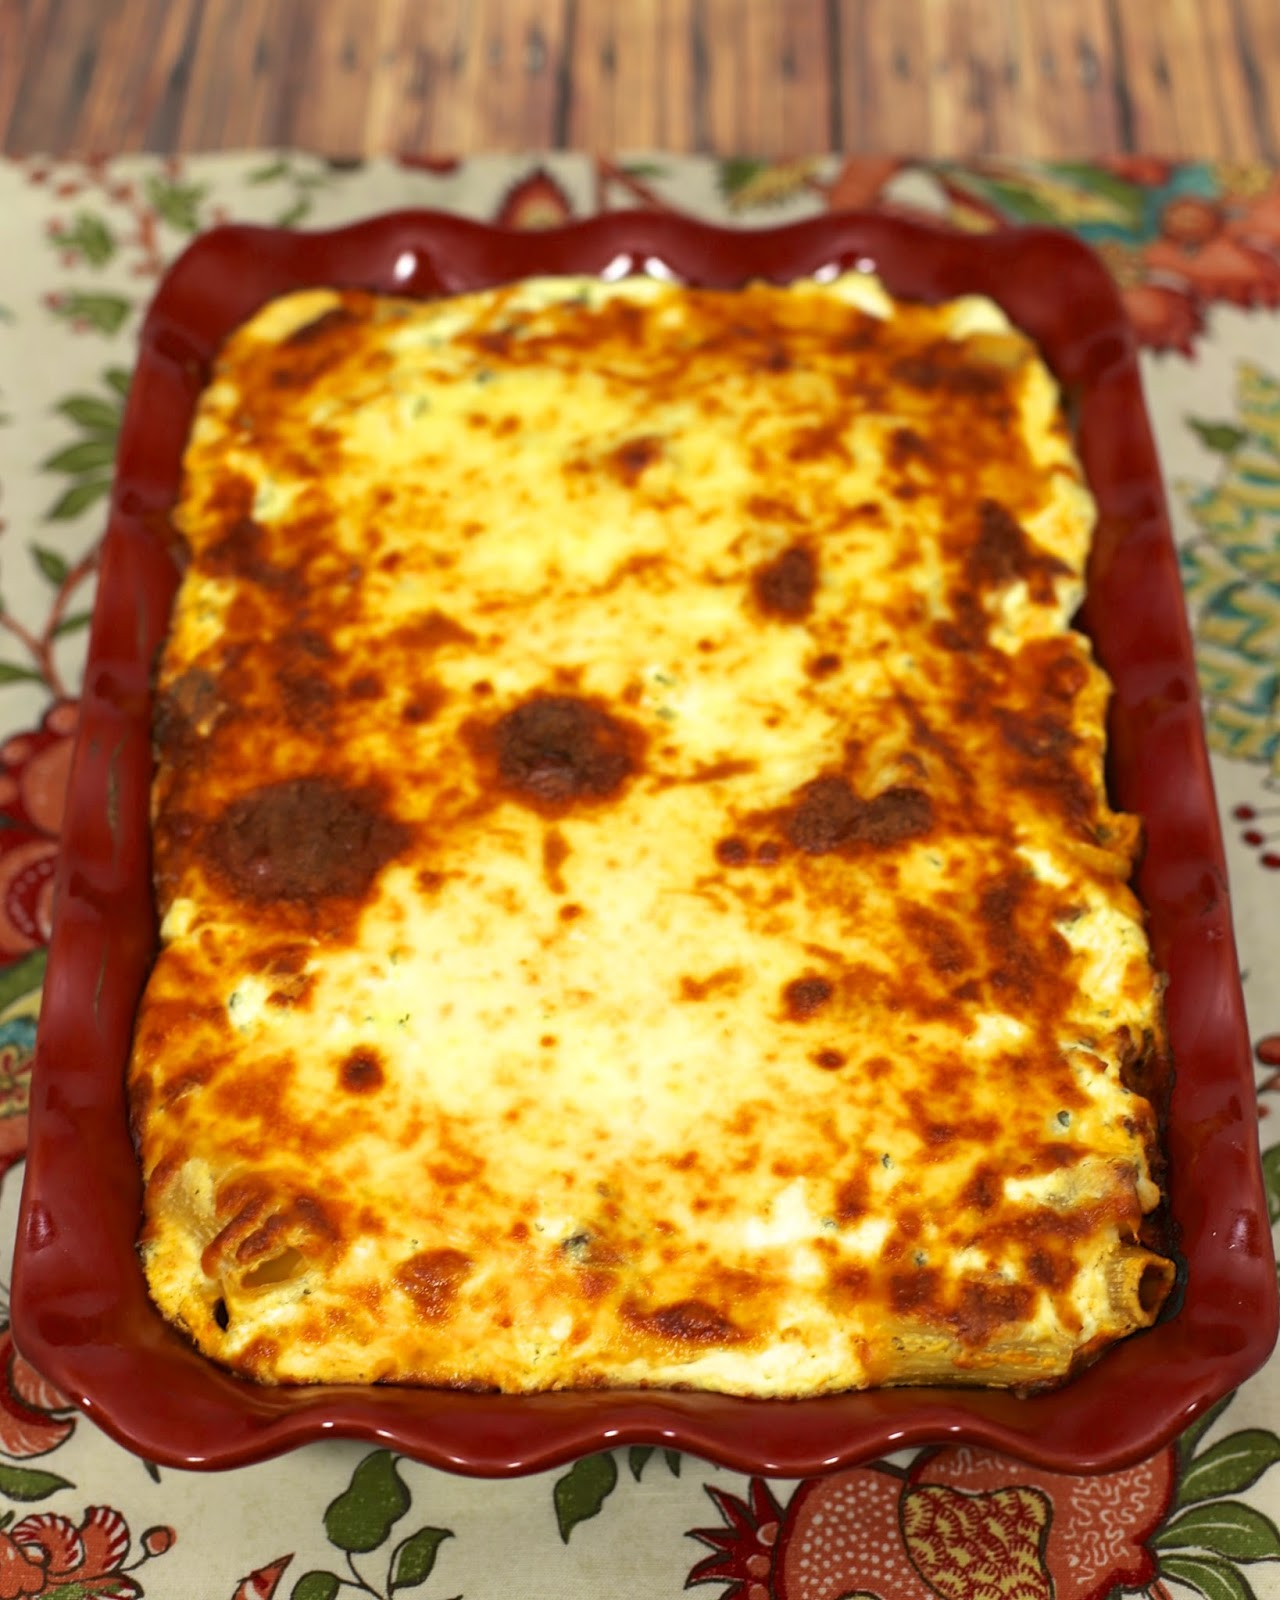 Cheesy Baked Rigatoni Recipe - rigatoni, Italian sausage, spaghetti sauce, cream cheese, sour cream, cottage cheese/ricotta, mozzarella and parmesan cheese. Ooey, gooey, cheesy heaven! Can make ahead and refrigerate or freeze. Makes a ton. Great for a potluck!